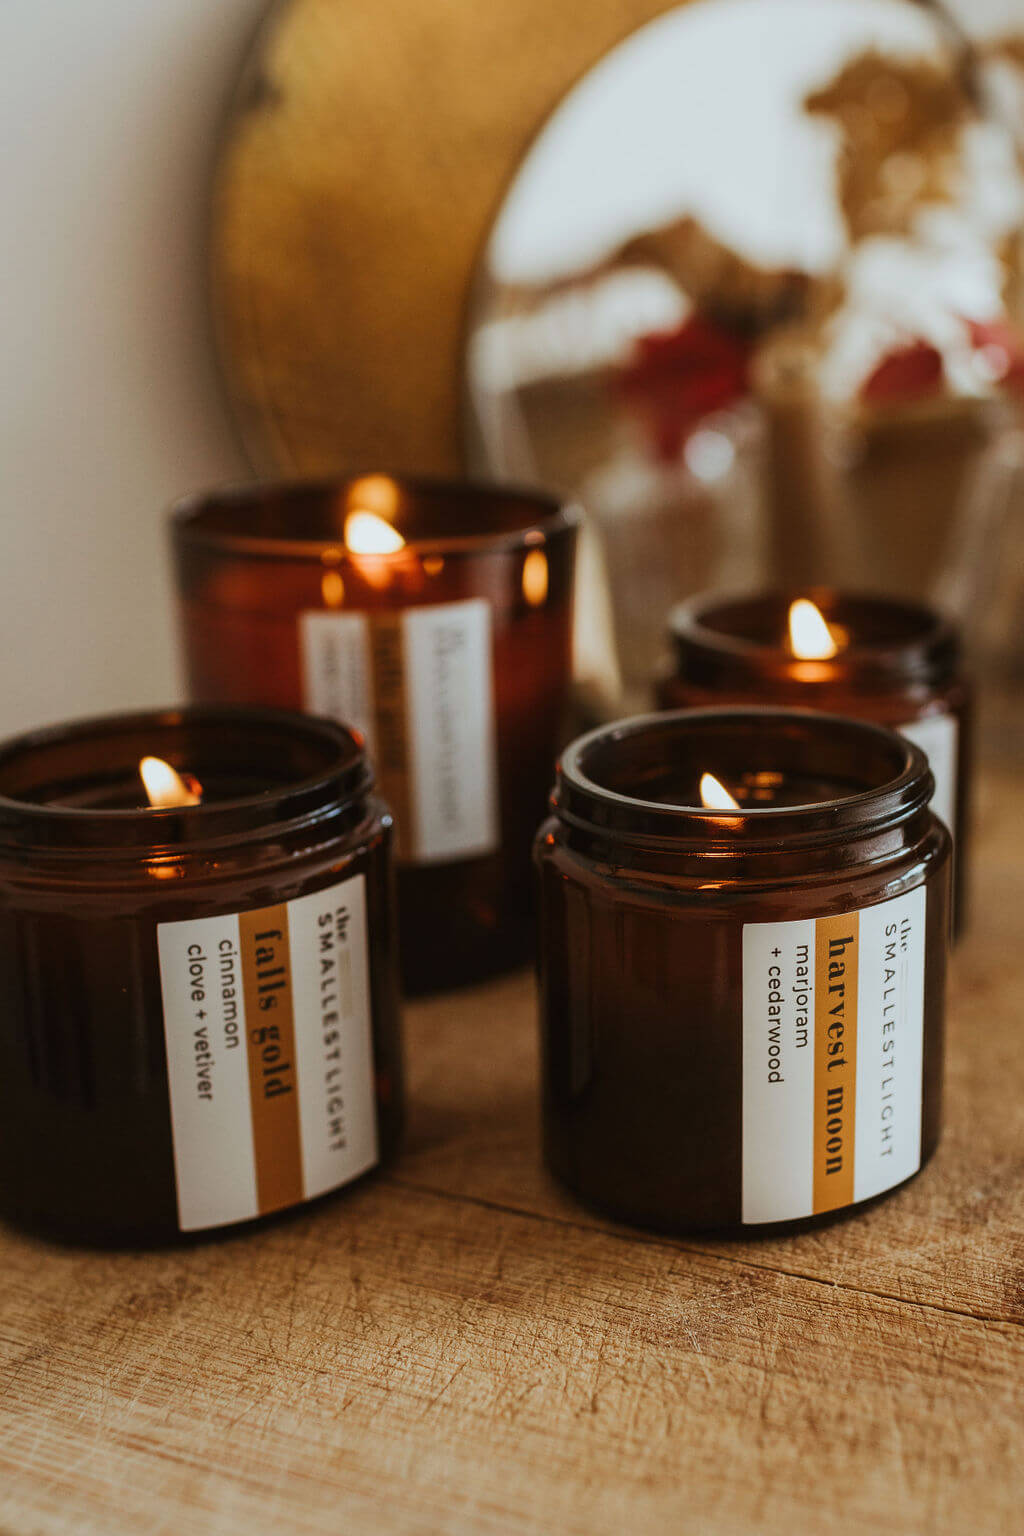 Natural Lit Candles from The Smallest Light